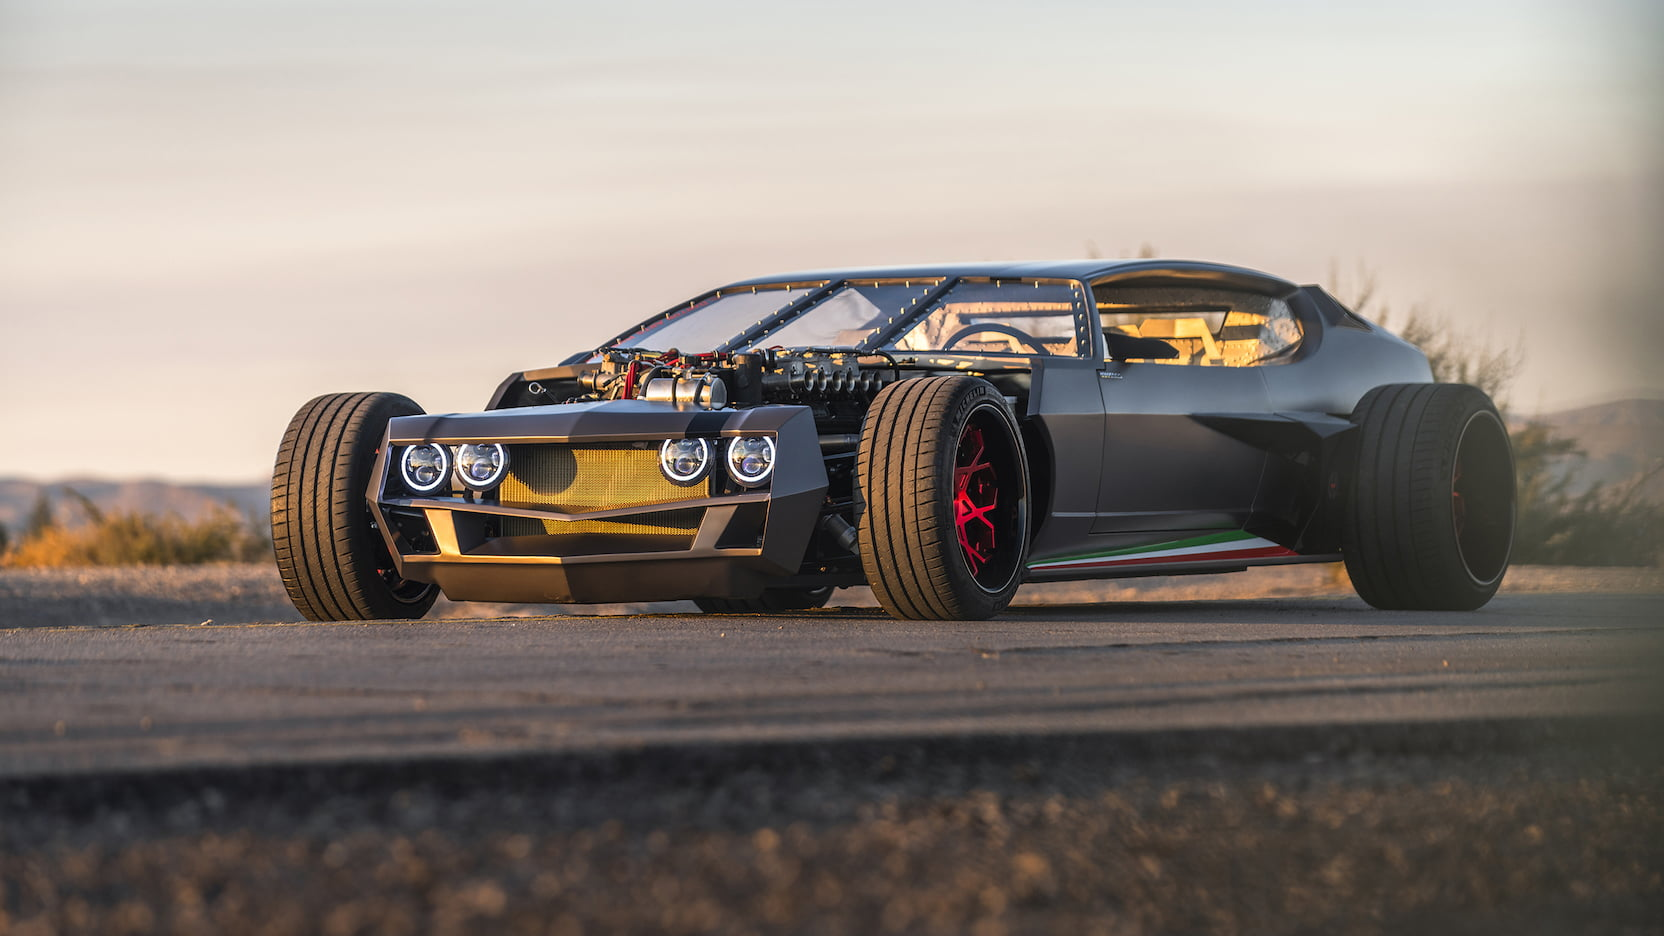 Lamborghini-Espada-Hot-Rod-for-sale-1